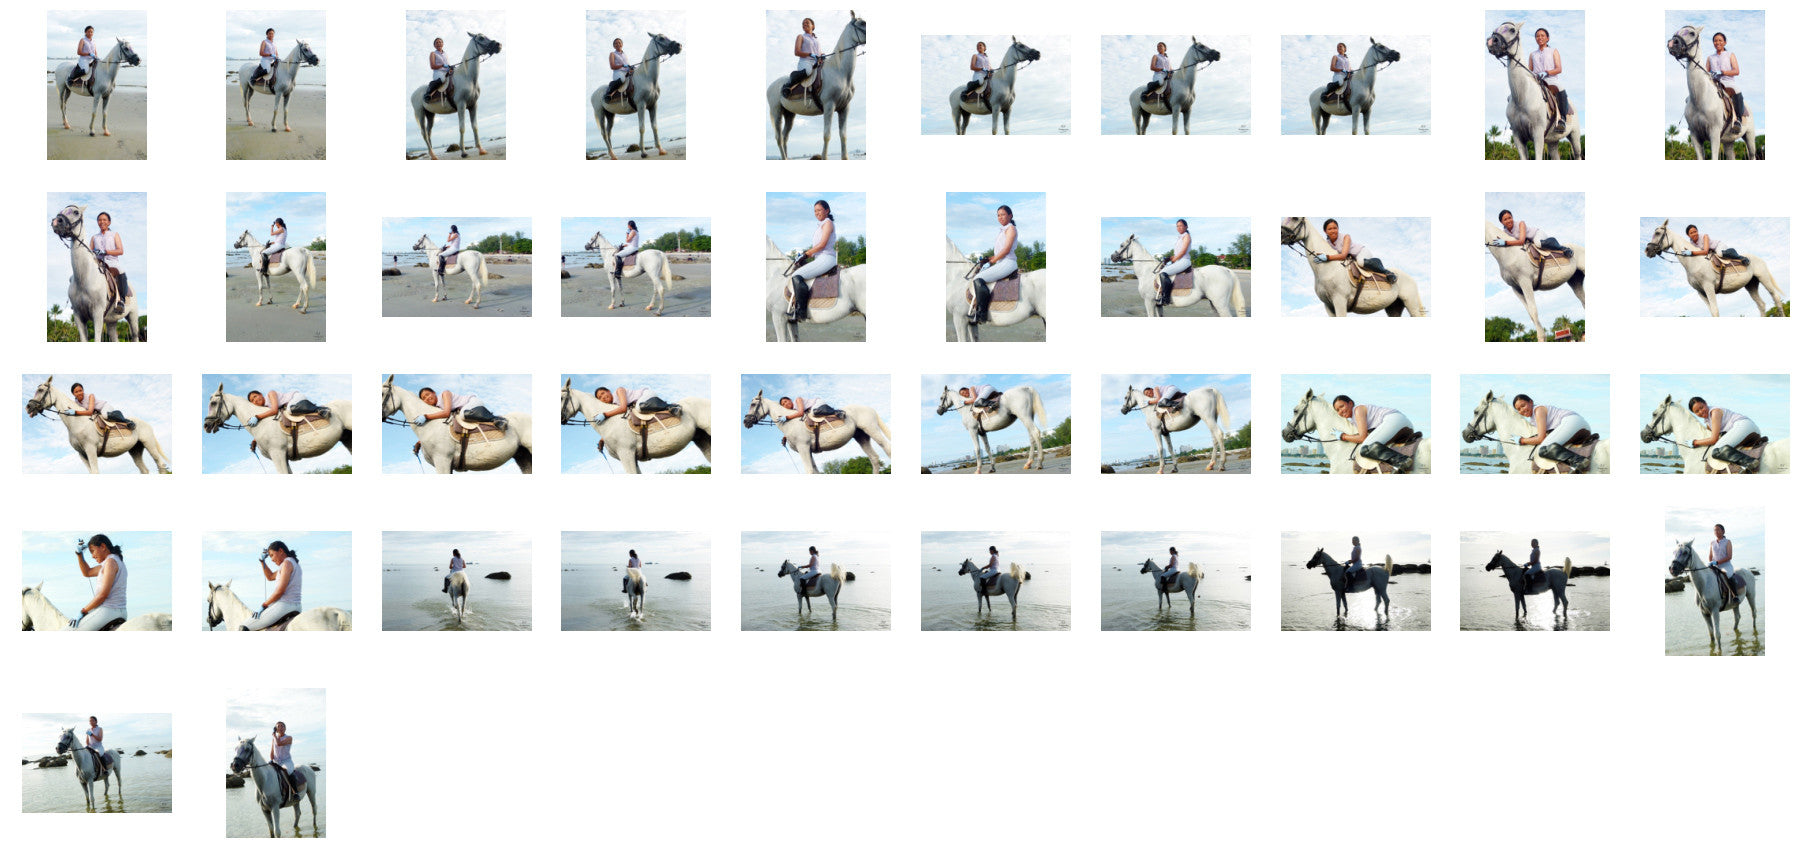 Nam in Jodhpurs Riding with Saddle on White Arabian Horse, Part 4 - Riding.Vision